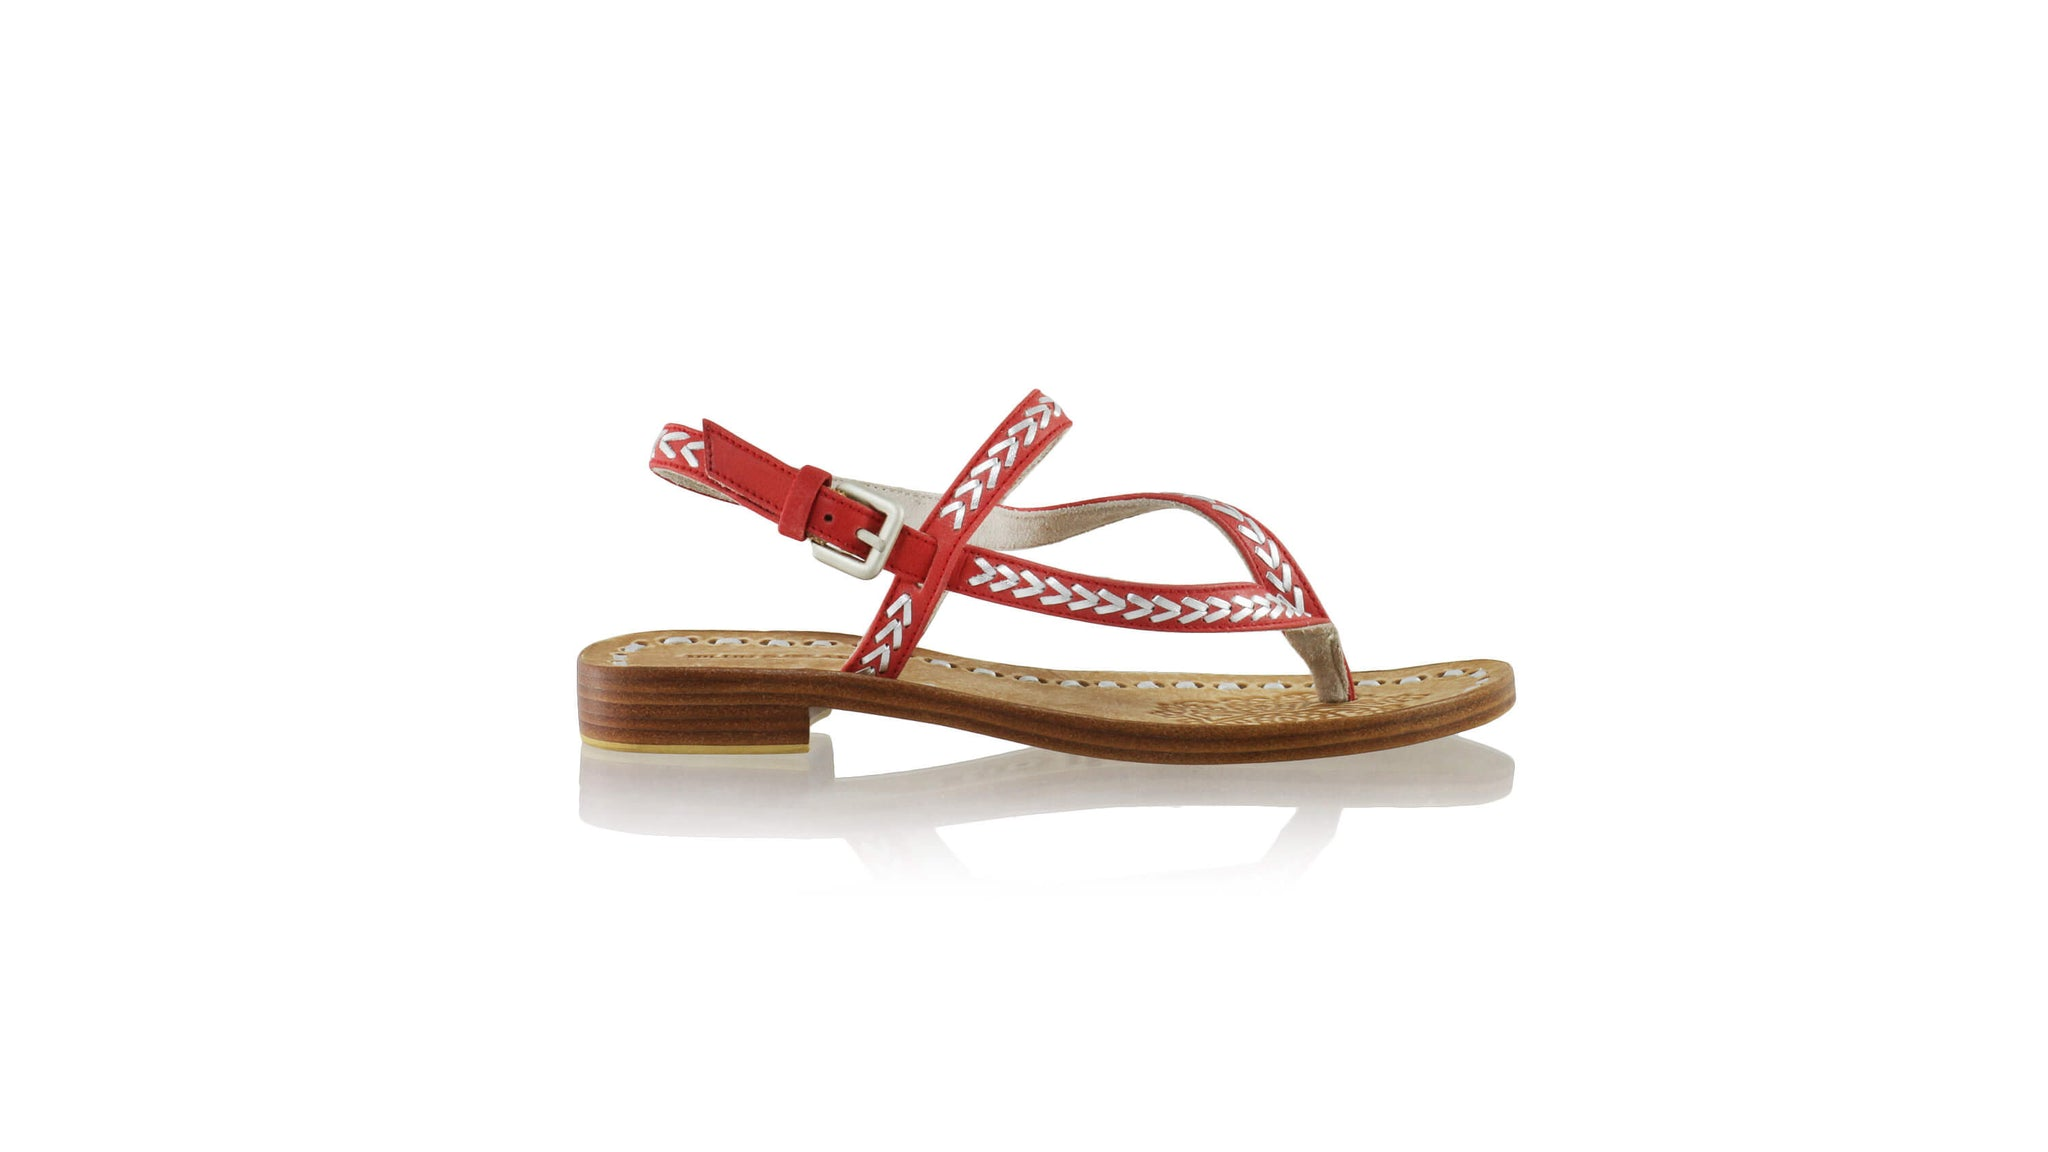 Leather-shoes-Papua 20mm Flat - Red & Silver-sandals flat-NILUH DJELANTIK-NILUH DJELANTIK